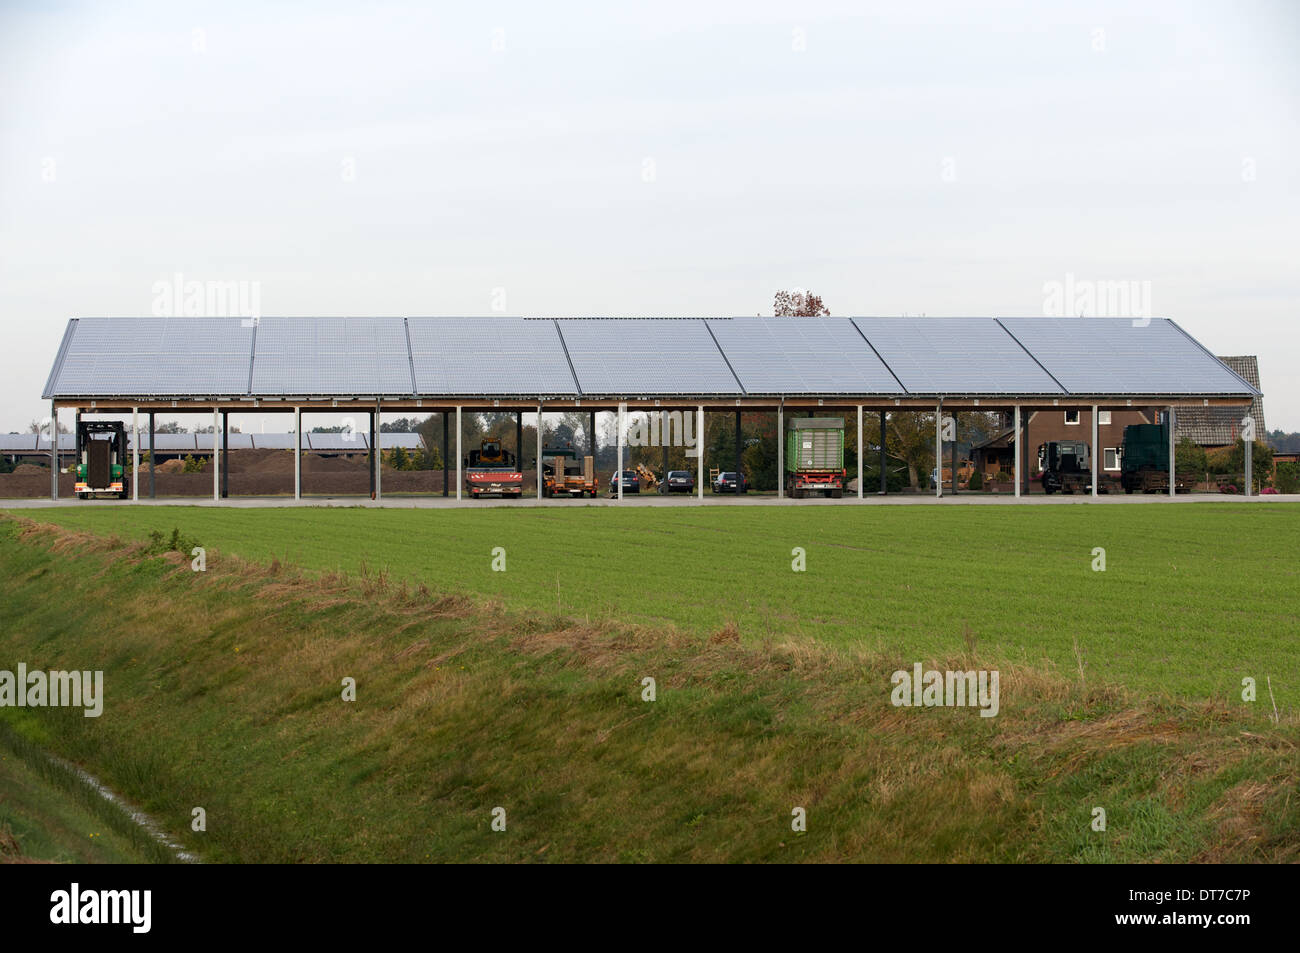 Agricultural building fitted with rooftop solar panels - Stock Image